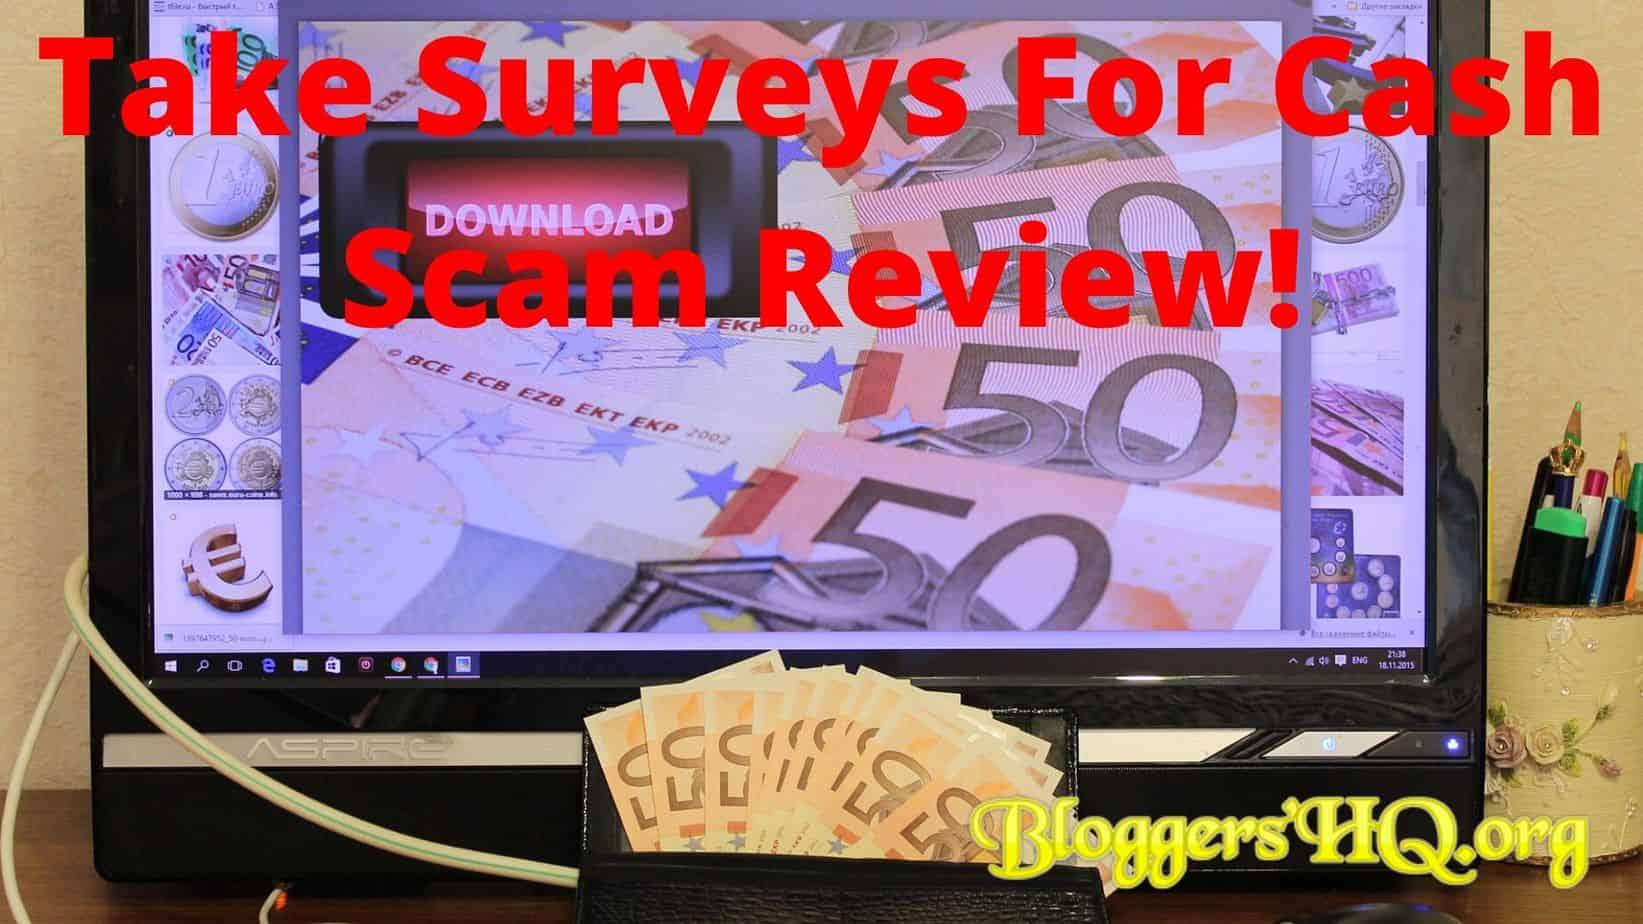 Take Surveys For Cash Scam Review Featured